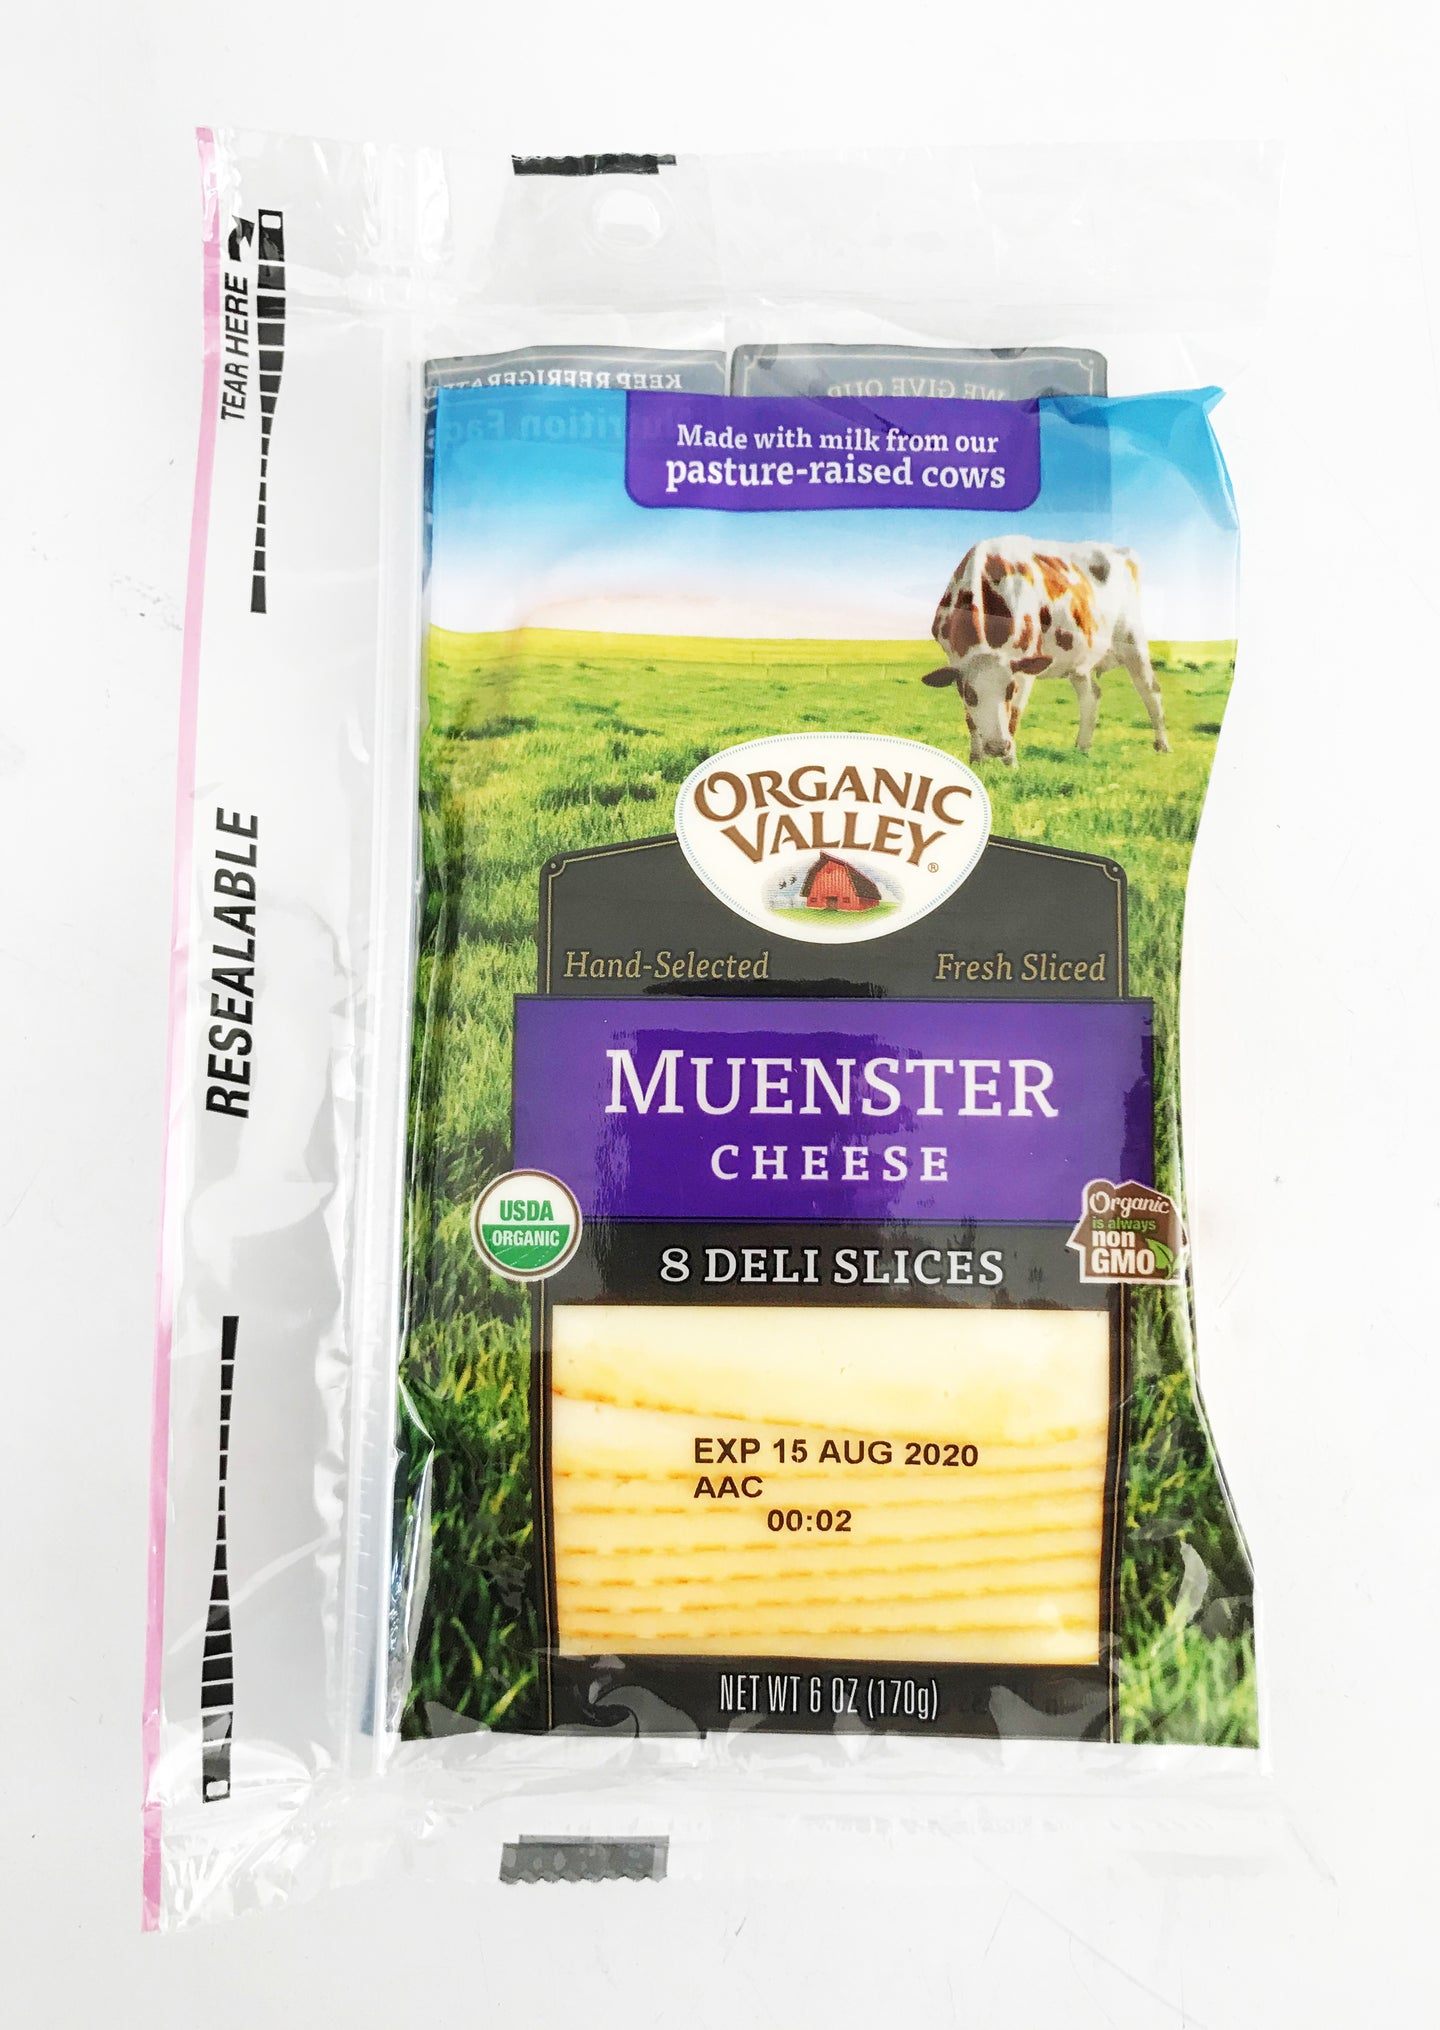 Organic Valley Muenster Cheese